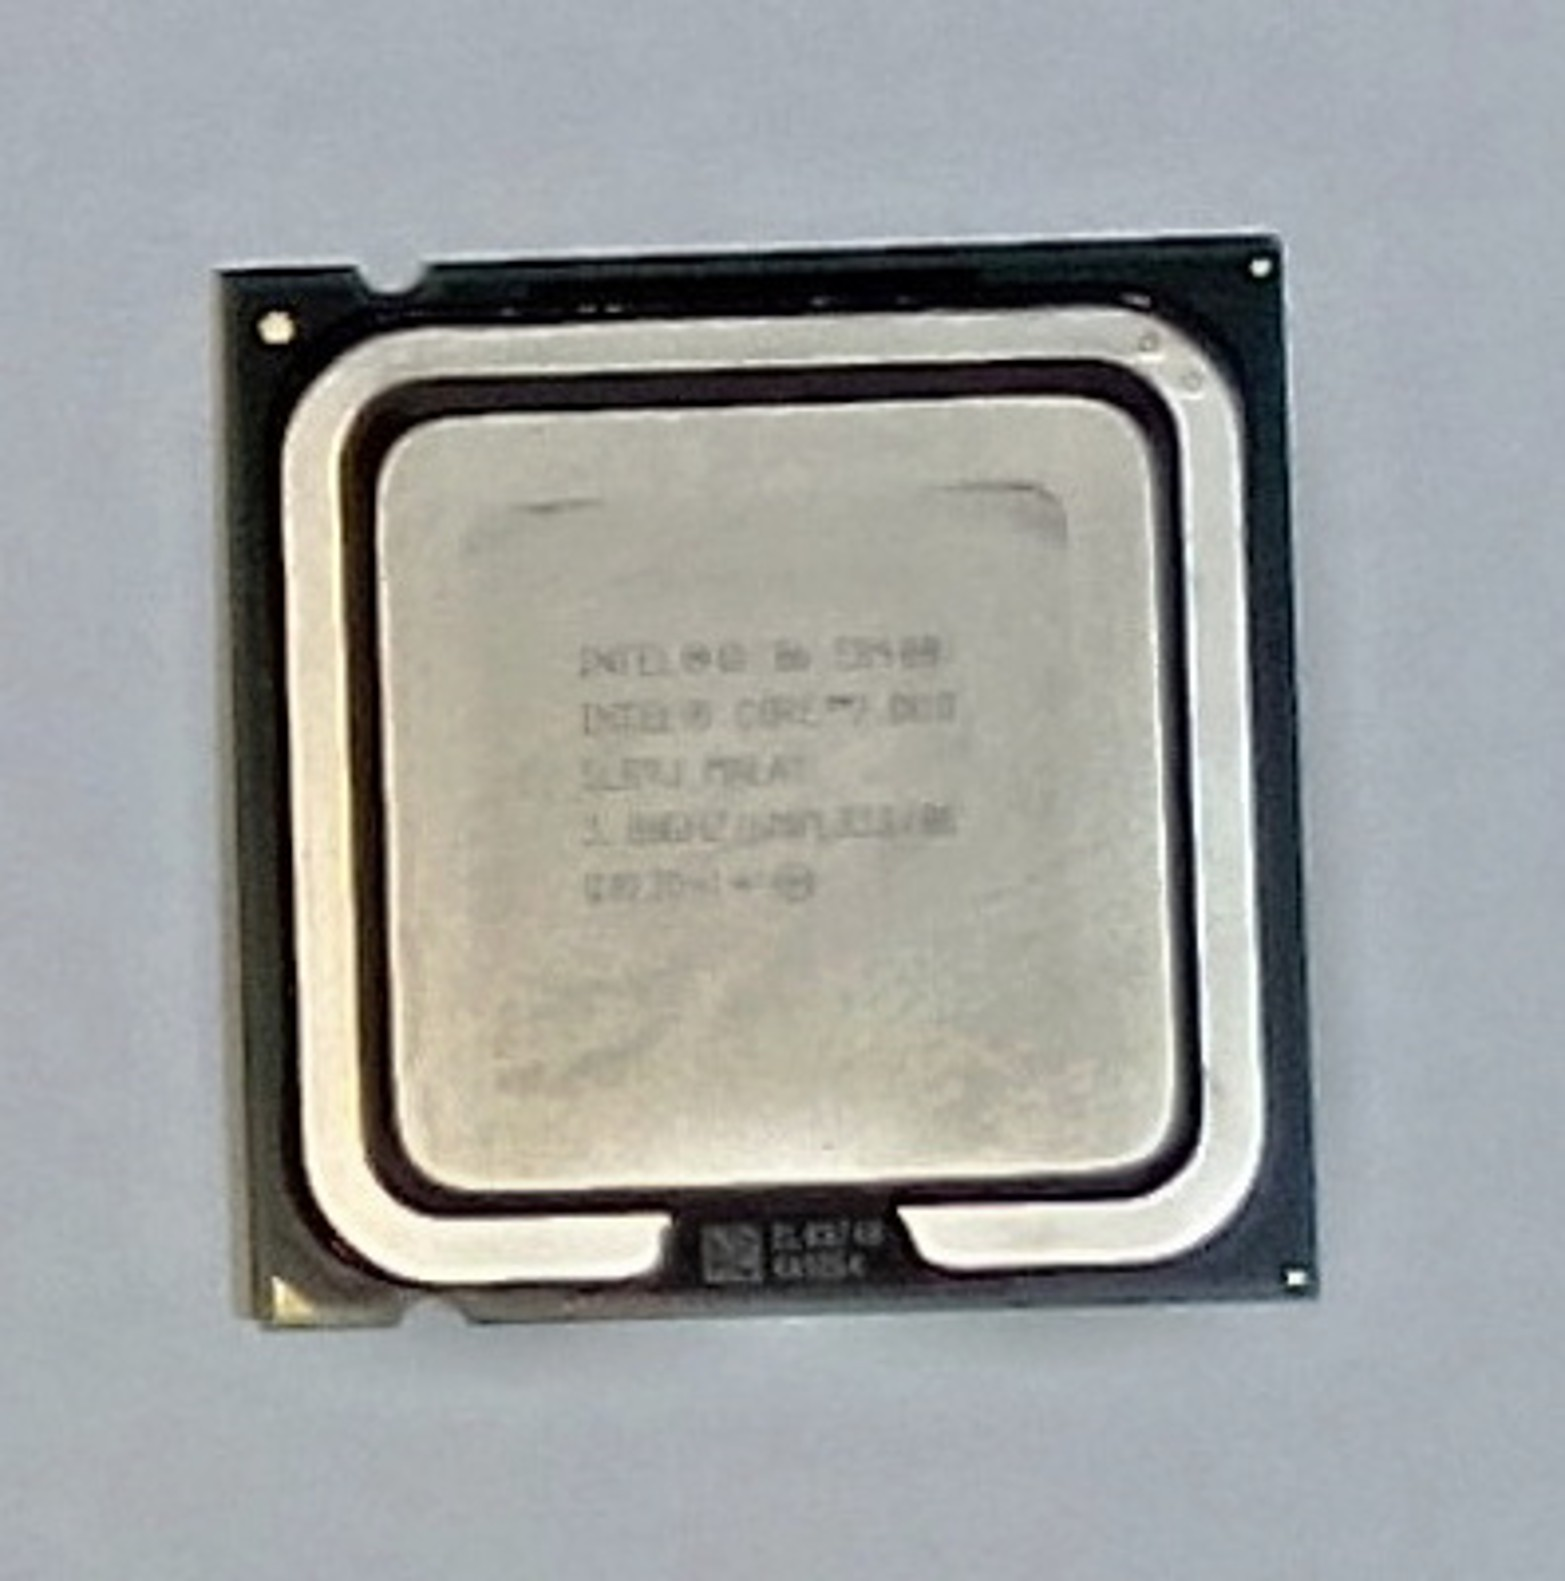 Intel Core 2 Duo  E8400, 3.0 GHz, EU80570PJ0806M